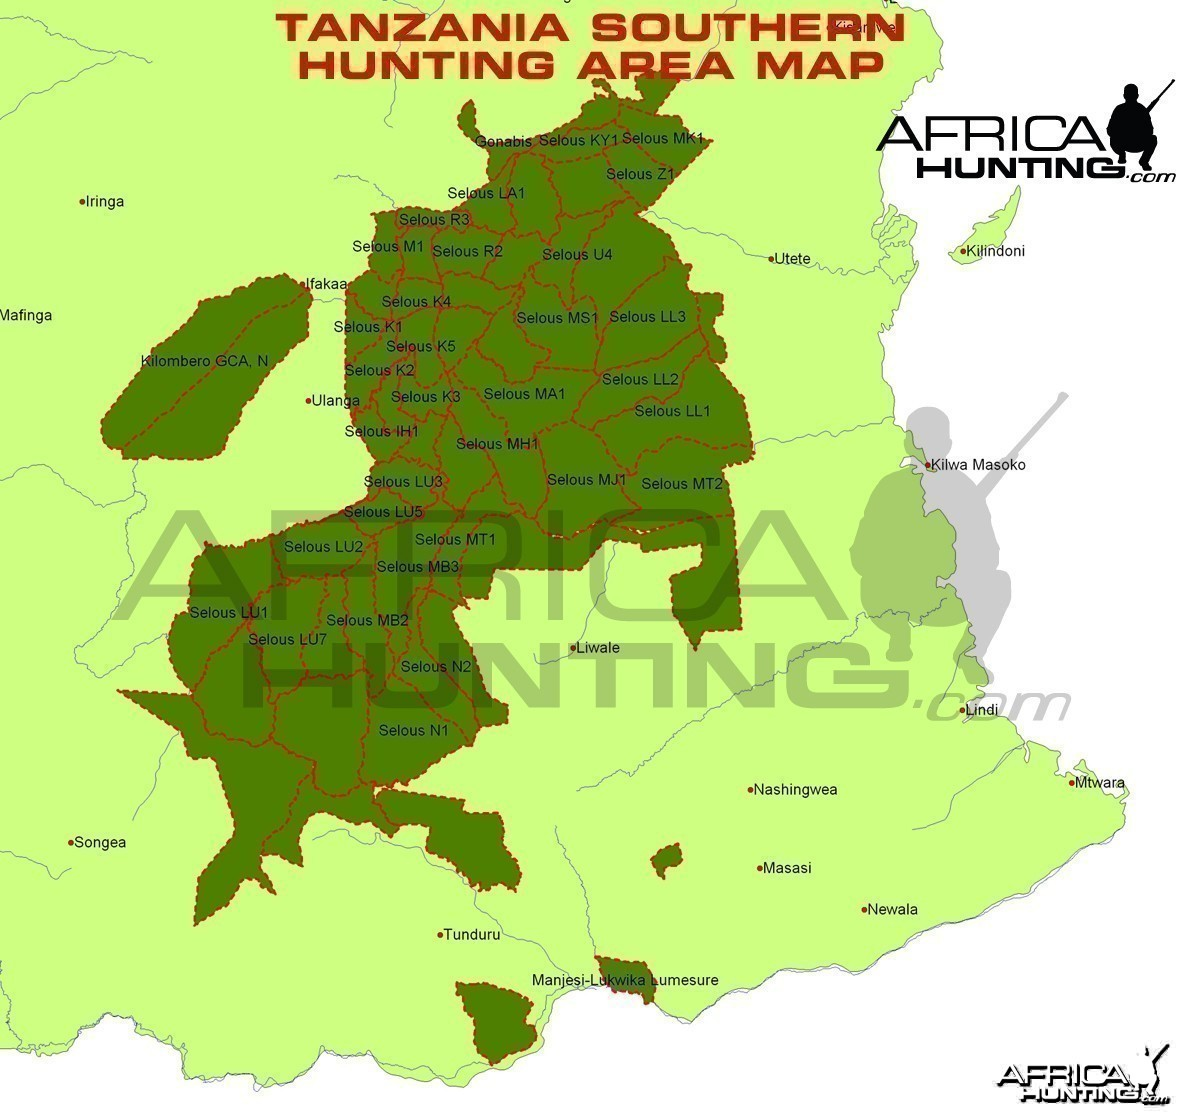 Hunting Areas of Southern Tanzania